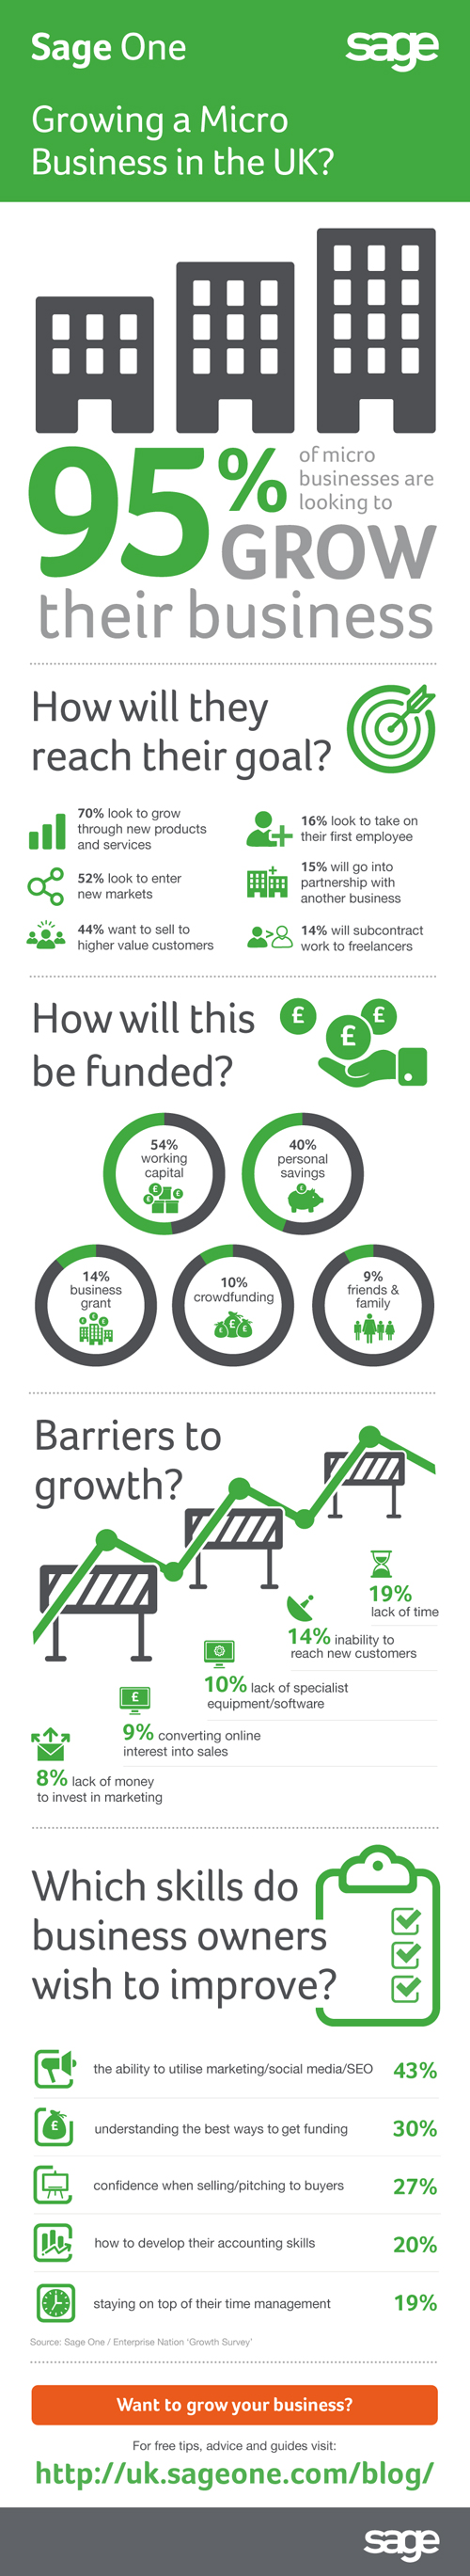 [Infographic] Growing a Micro Business (0-9 employees) in the UK?